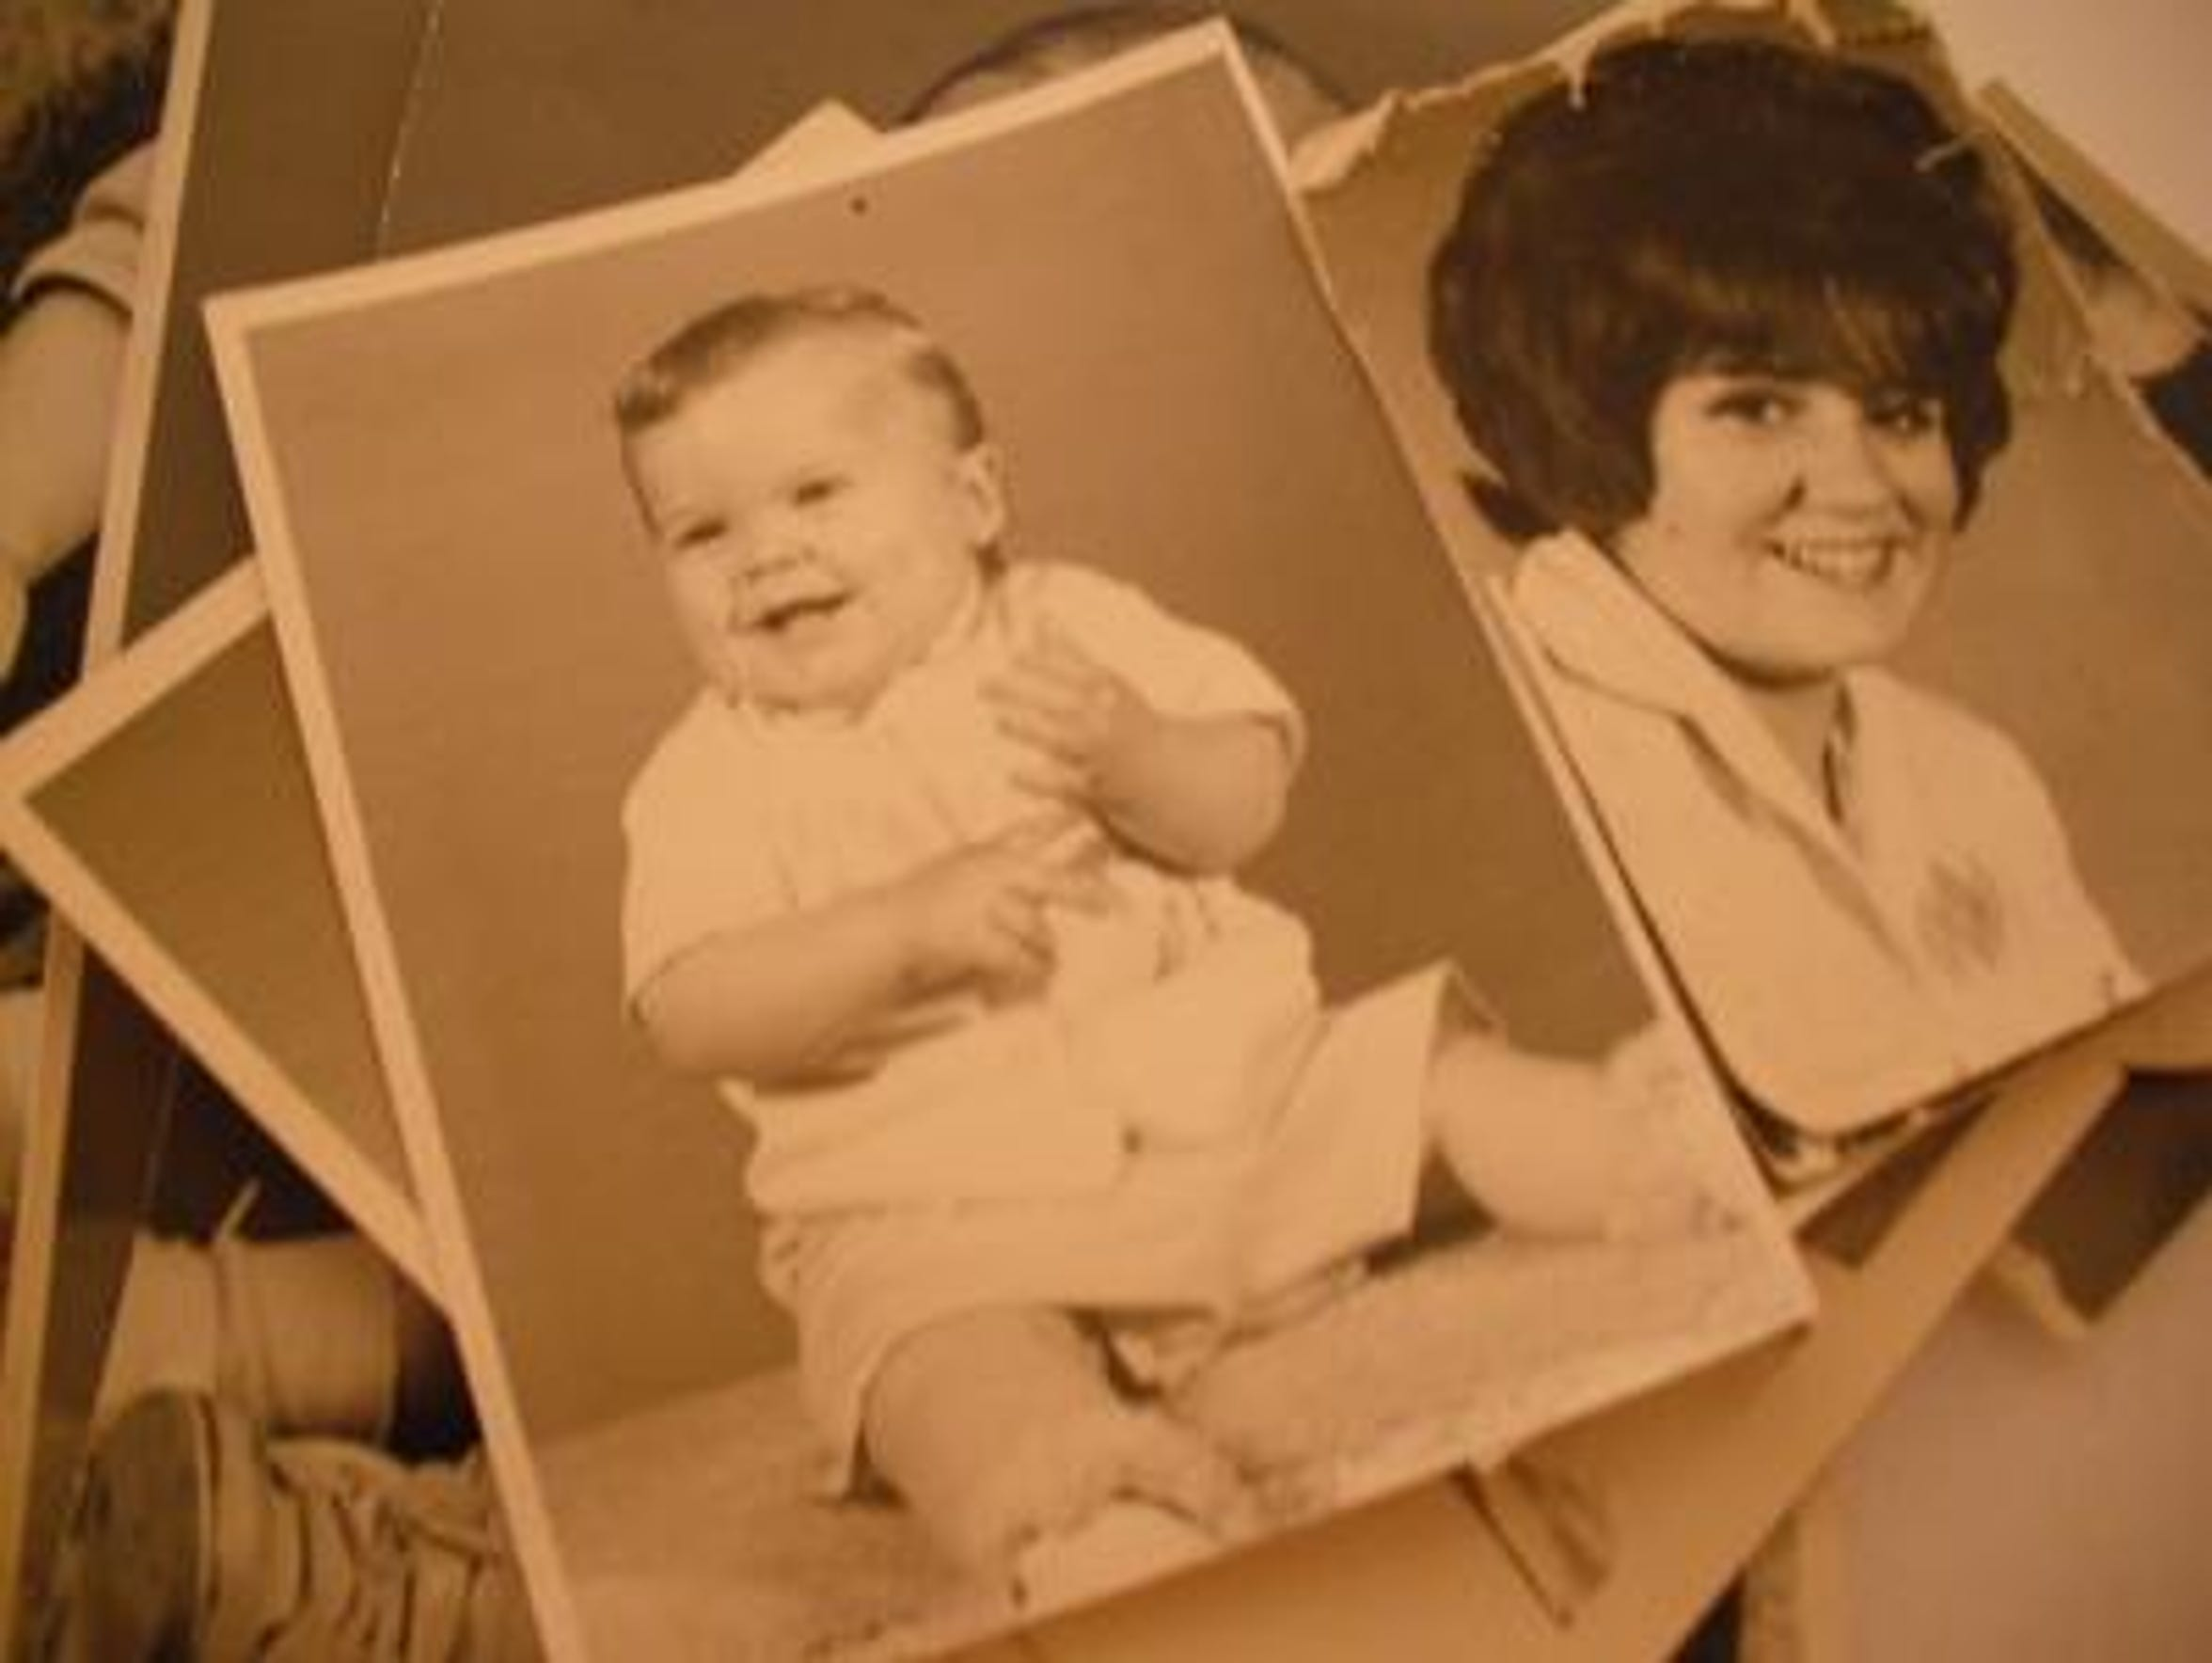 Undated photos of Jimmy Stellflug and his mother Mary